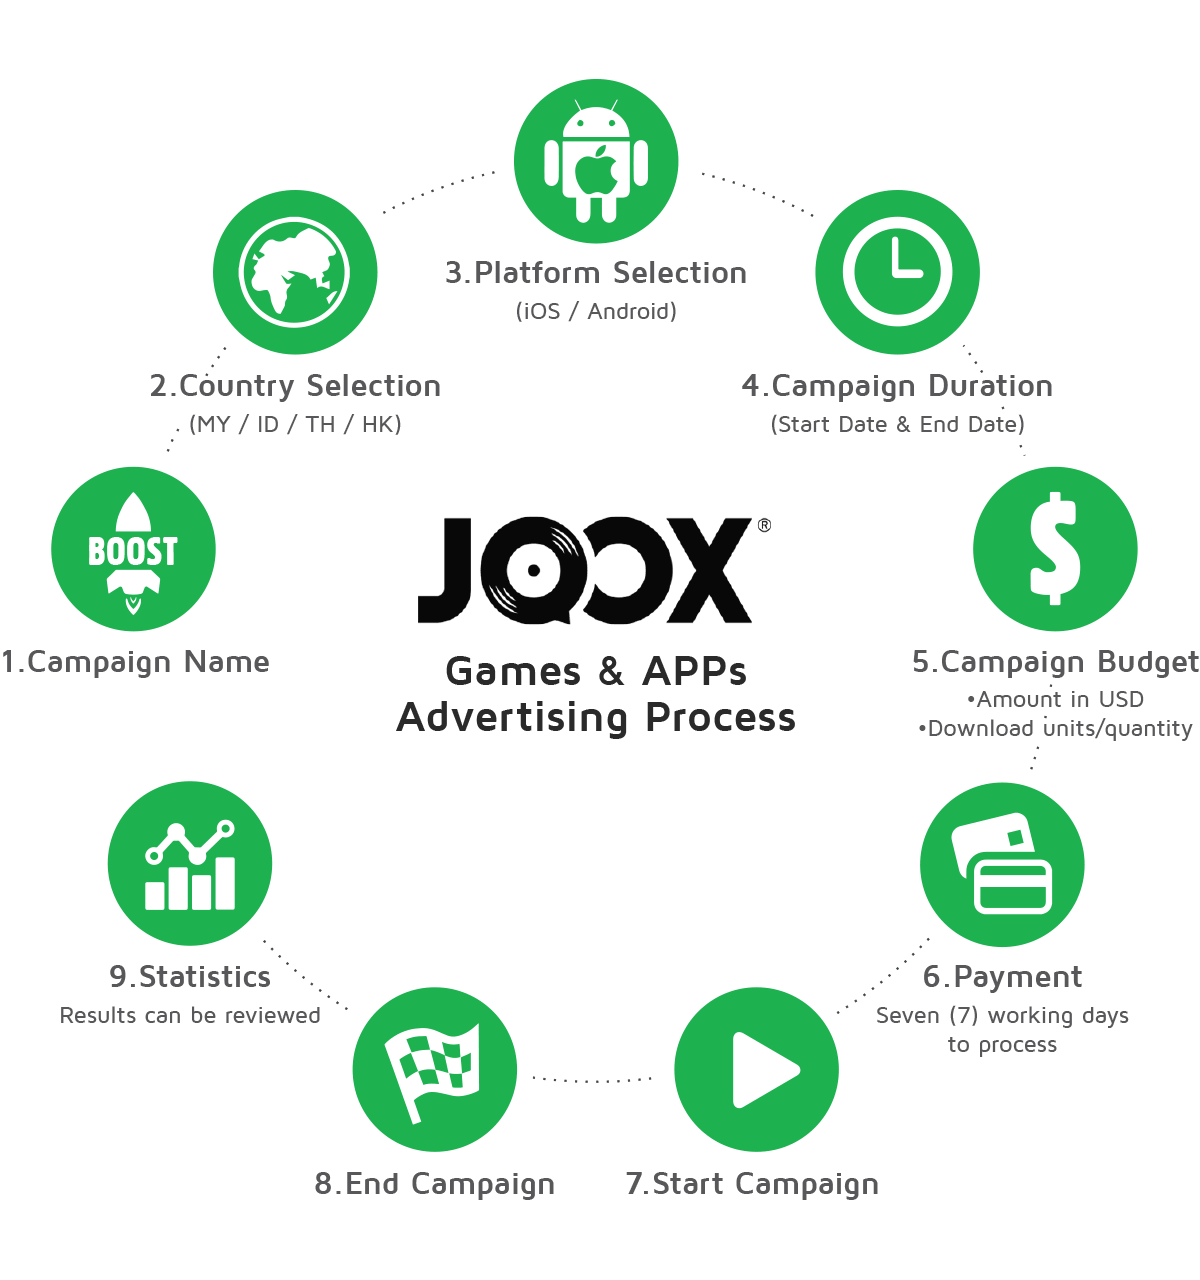 Joox advertisement michaelsoft most effective exposure for app michaelsoft joox advertisement platform stopboris Images